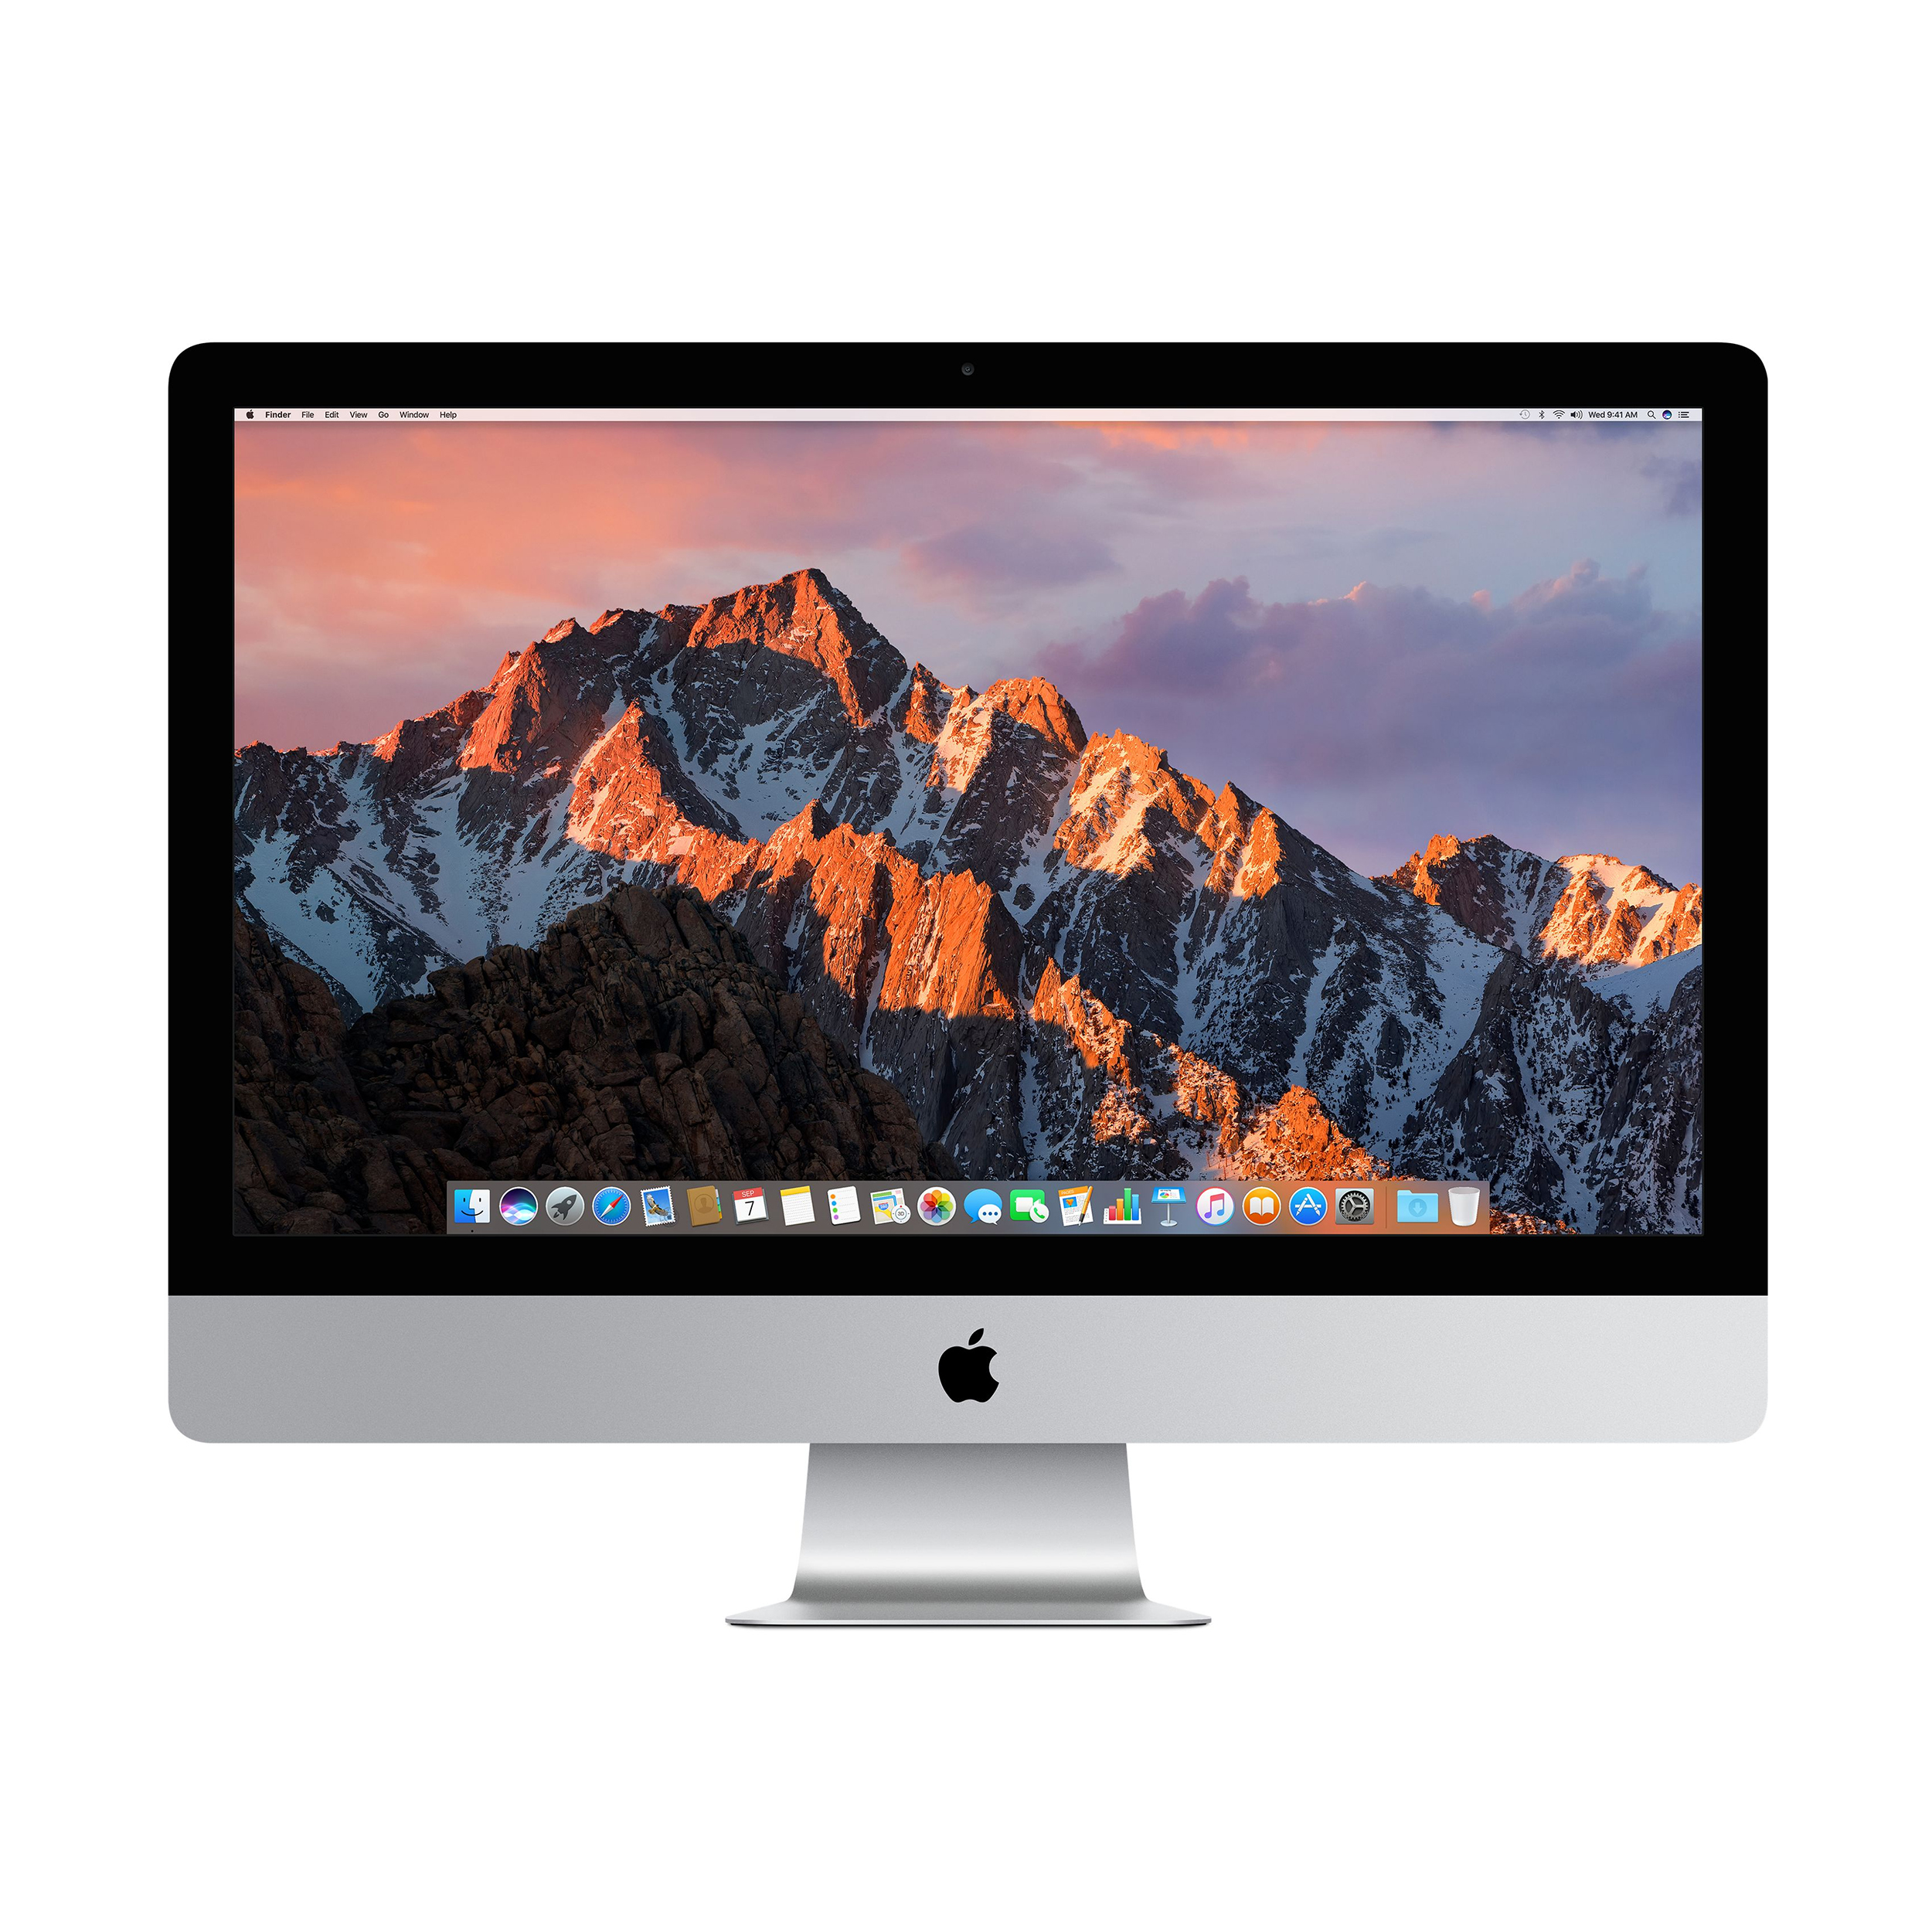 Apple iMac 21.5inch 8th Generation MacOS 4K Display i5 Processor 8GB Ref MRT42B/A